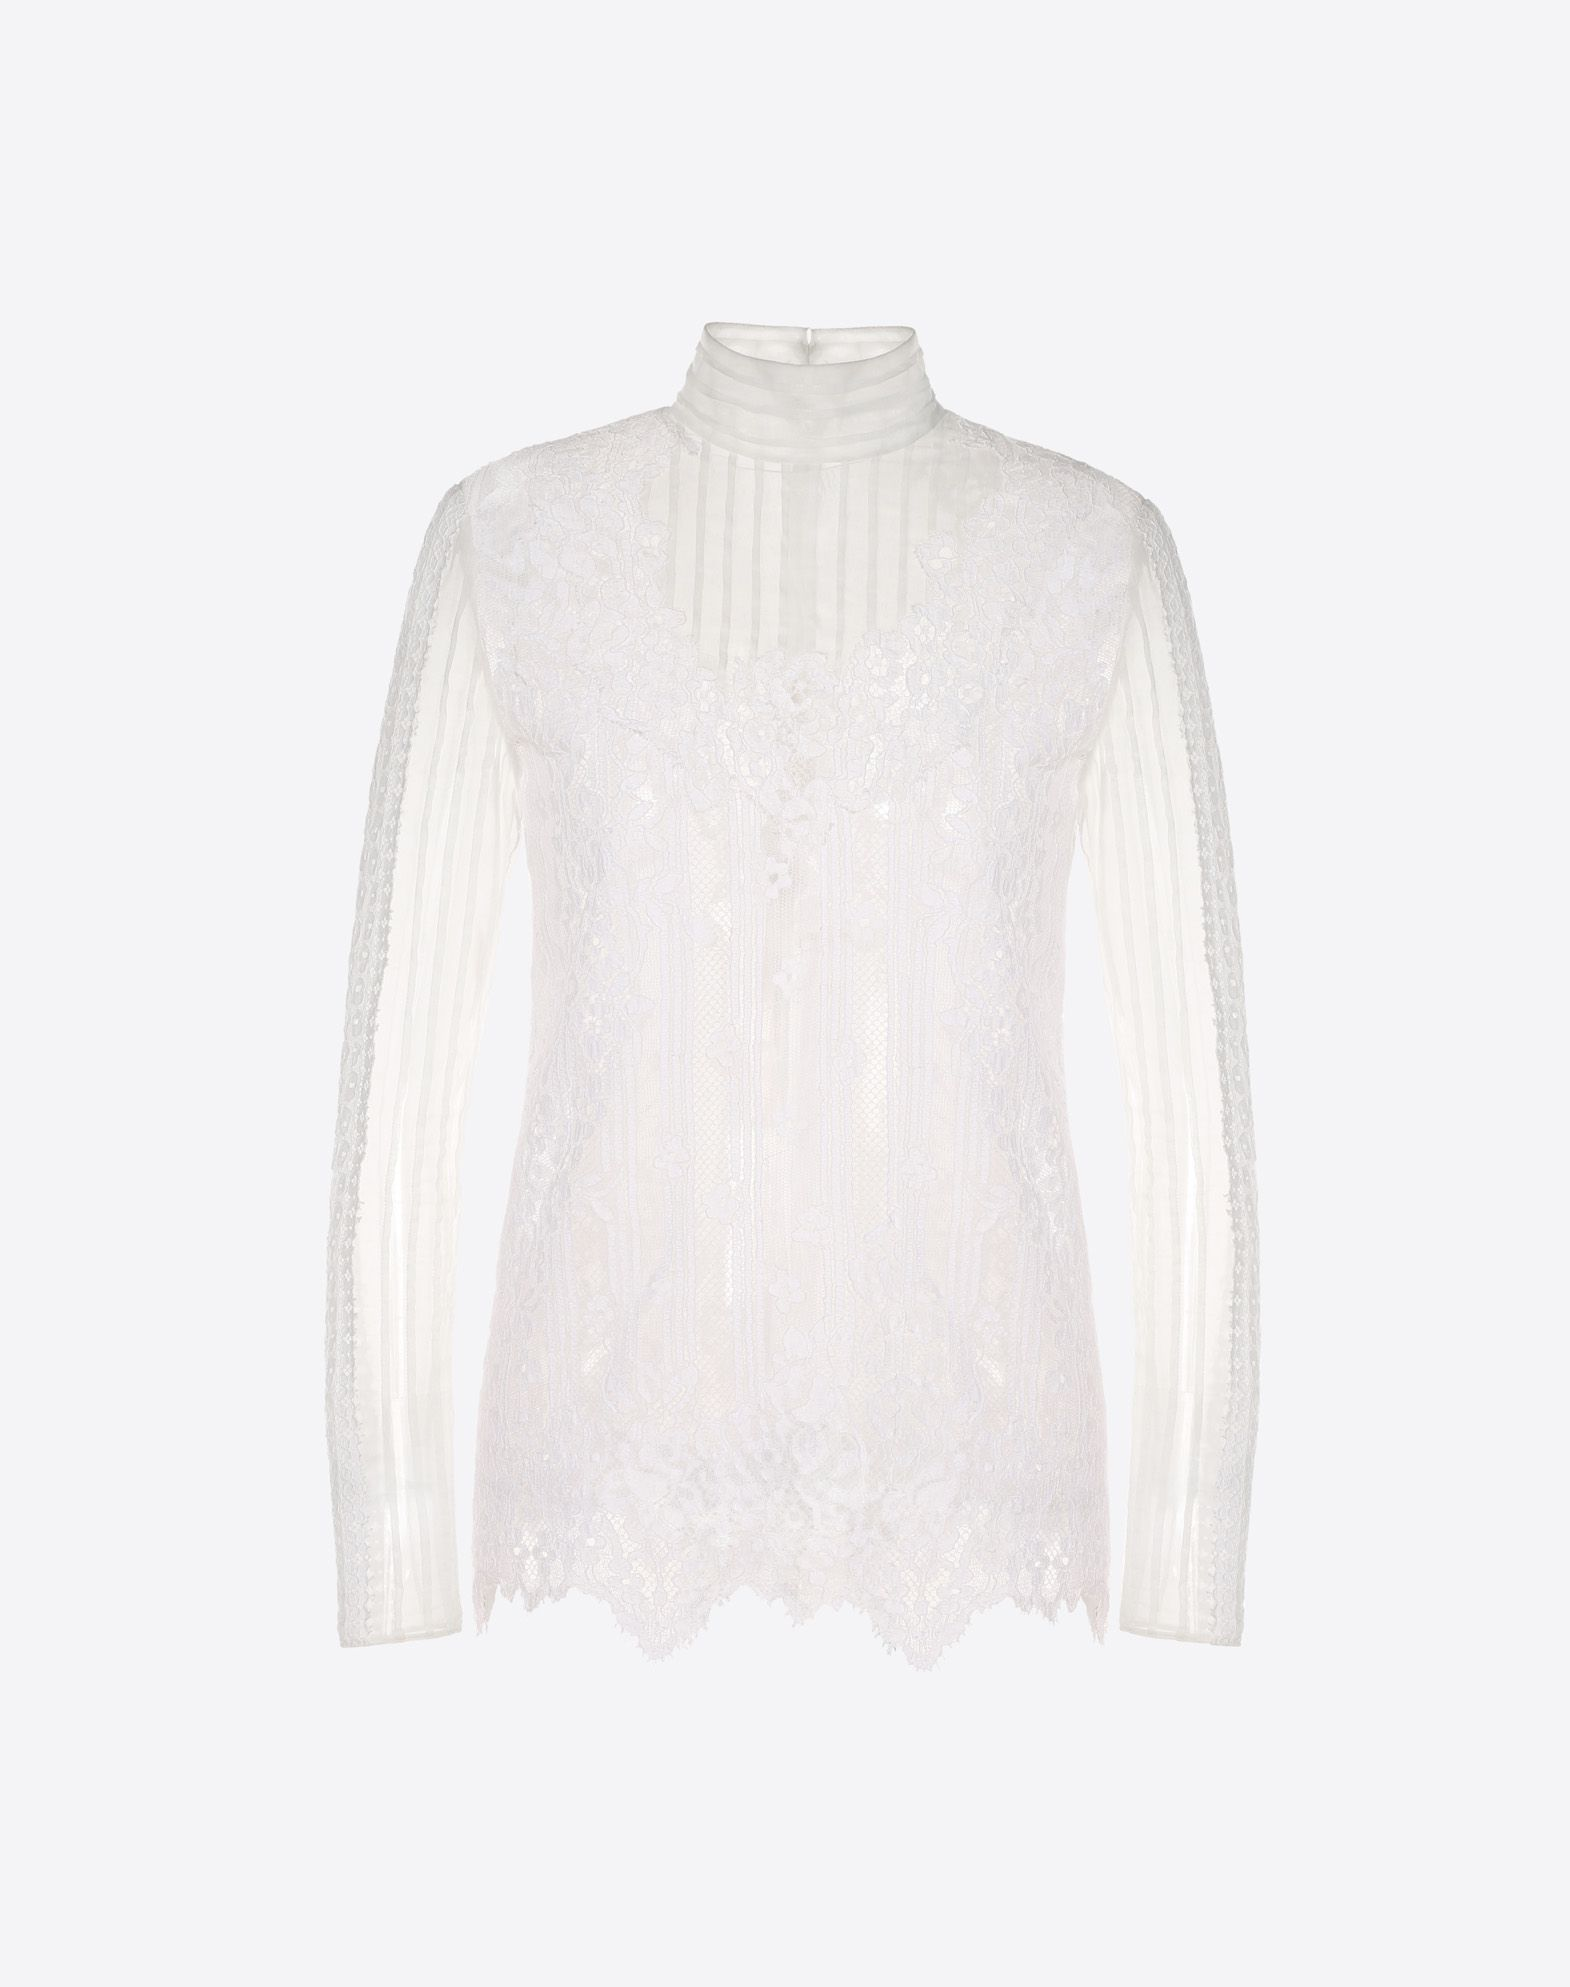 VALENTINO TOP D Heavy Lace Top f